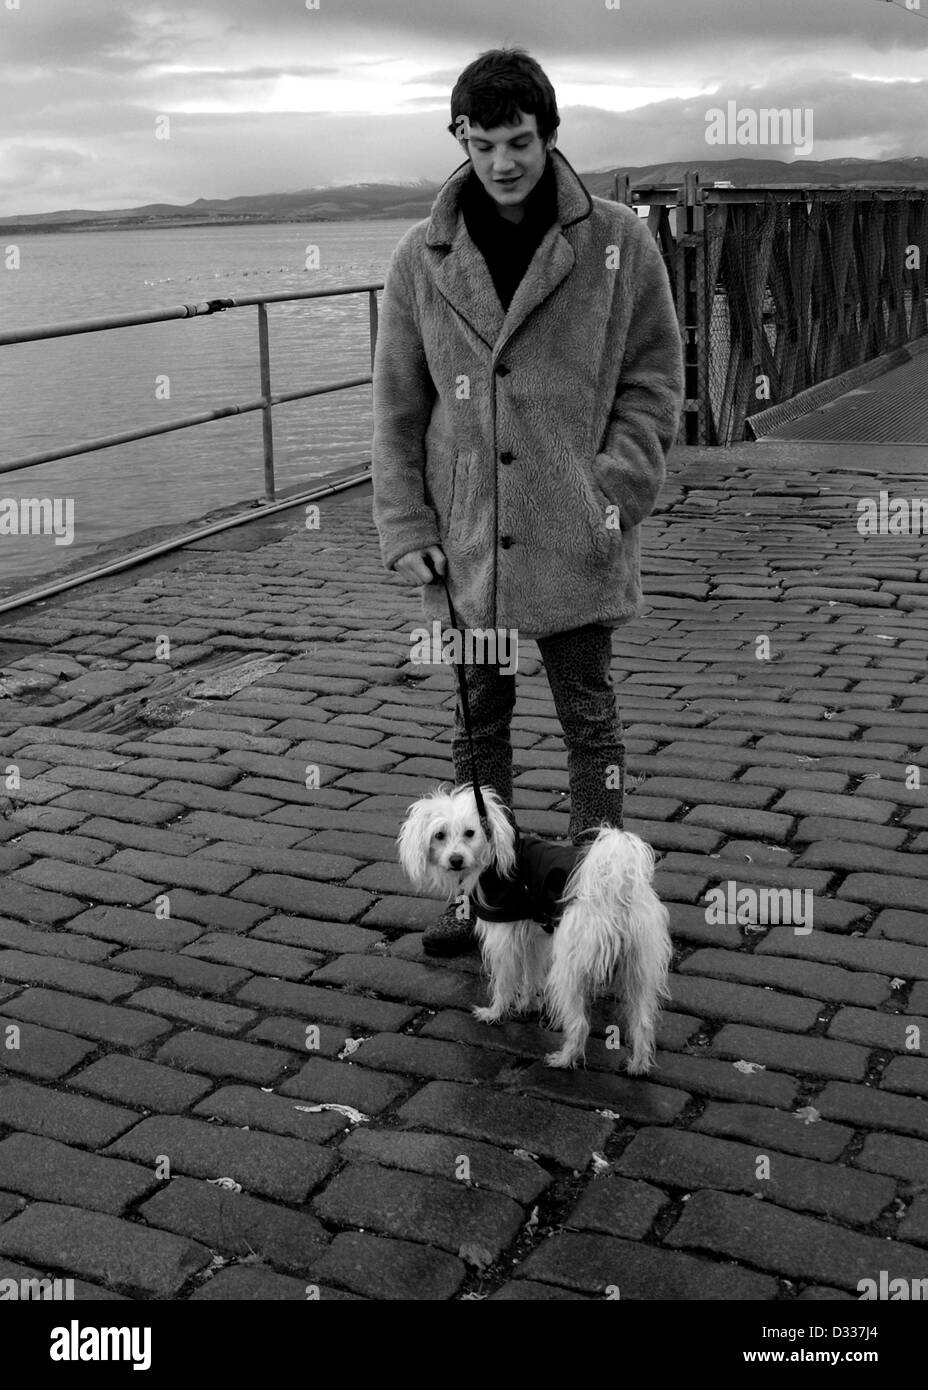 A young man, dressed in the style of a mod, stands with a small Chinese Crested dog on a harbour in the Scottish - Stock Image